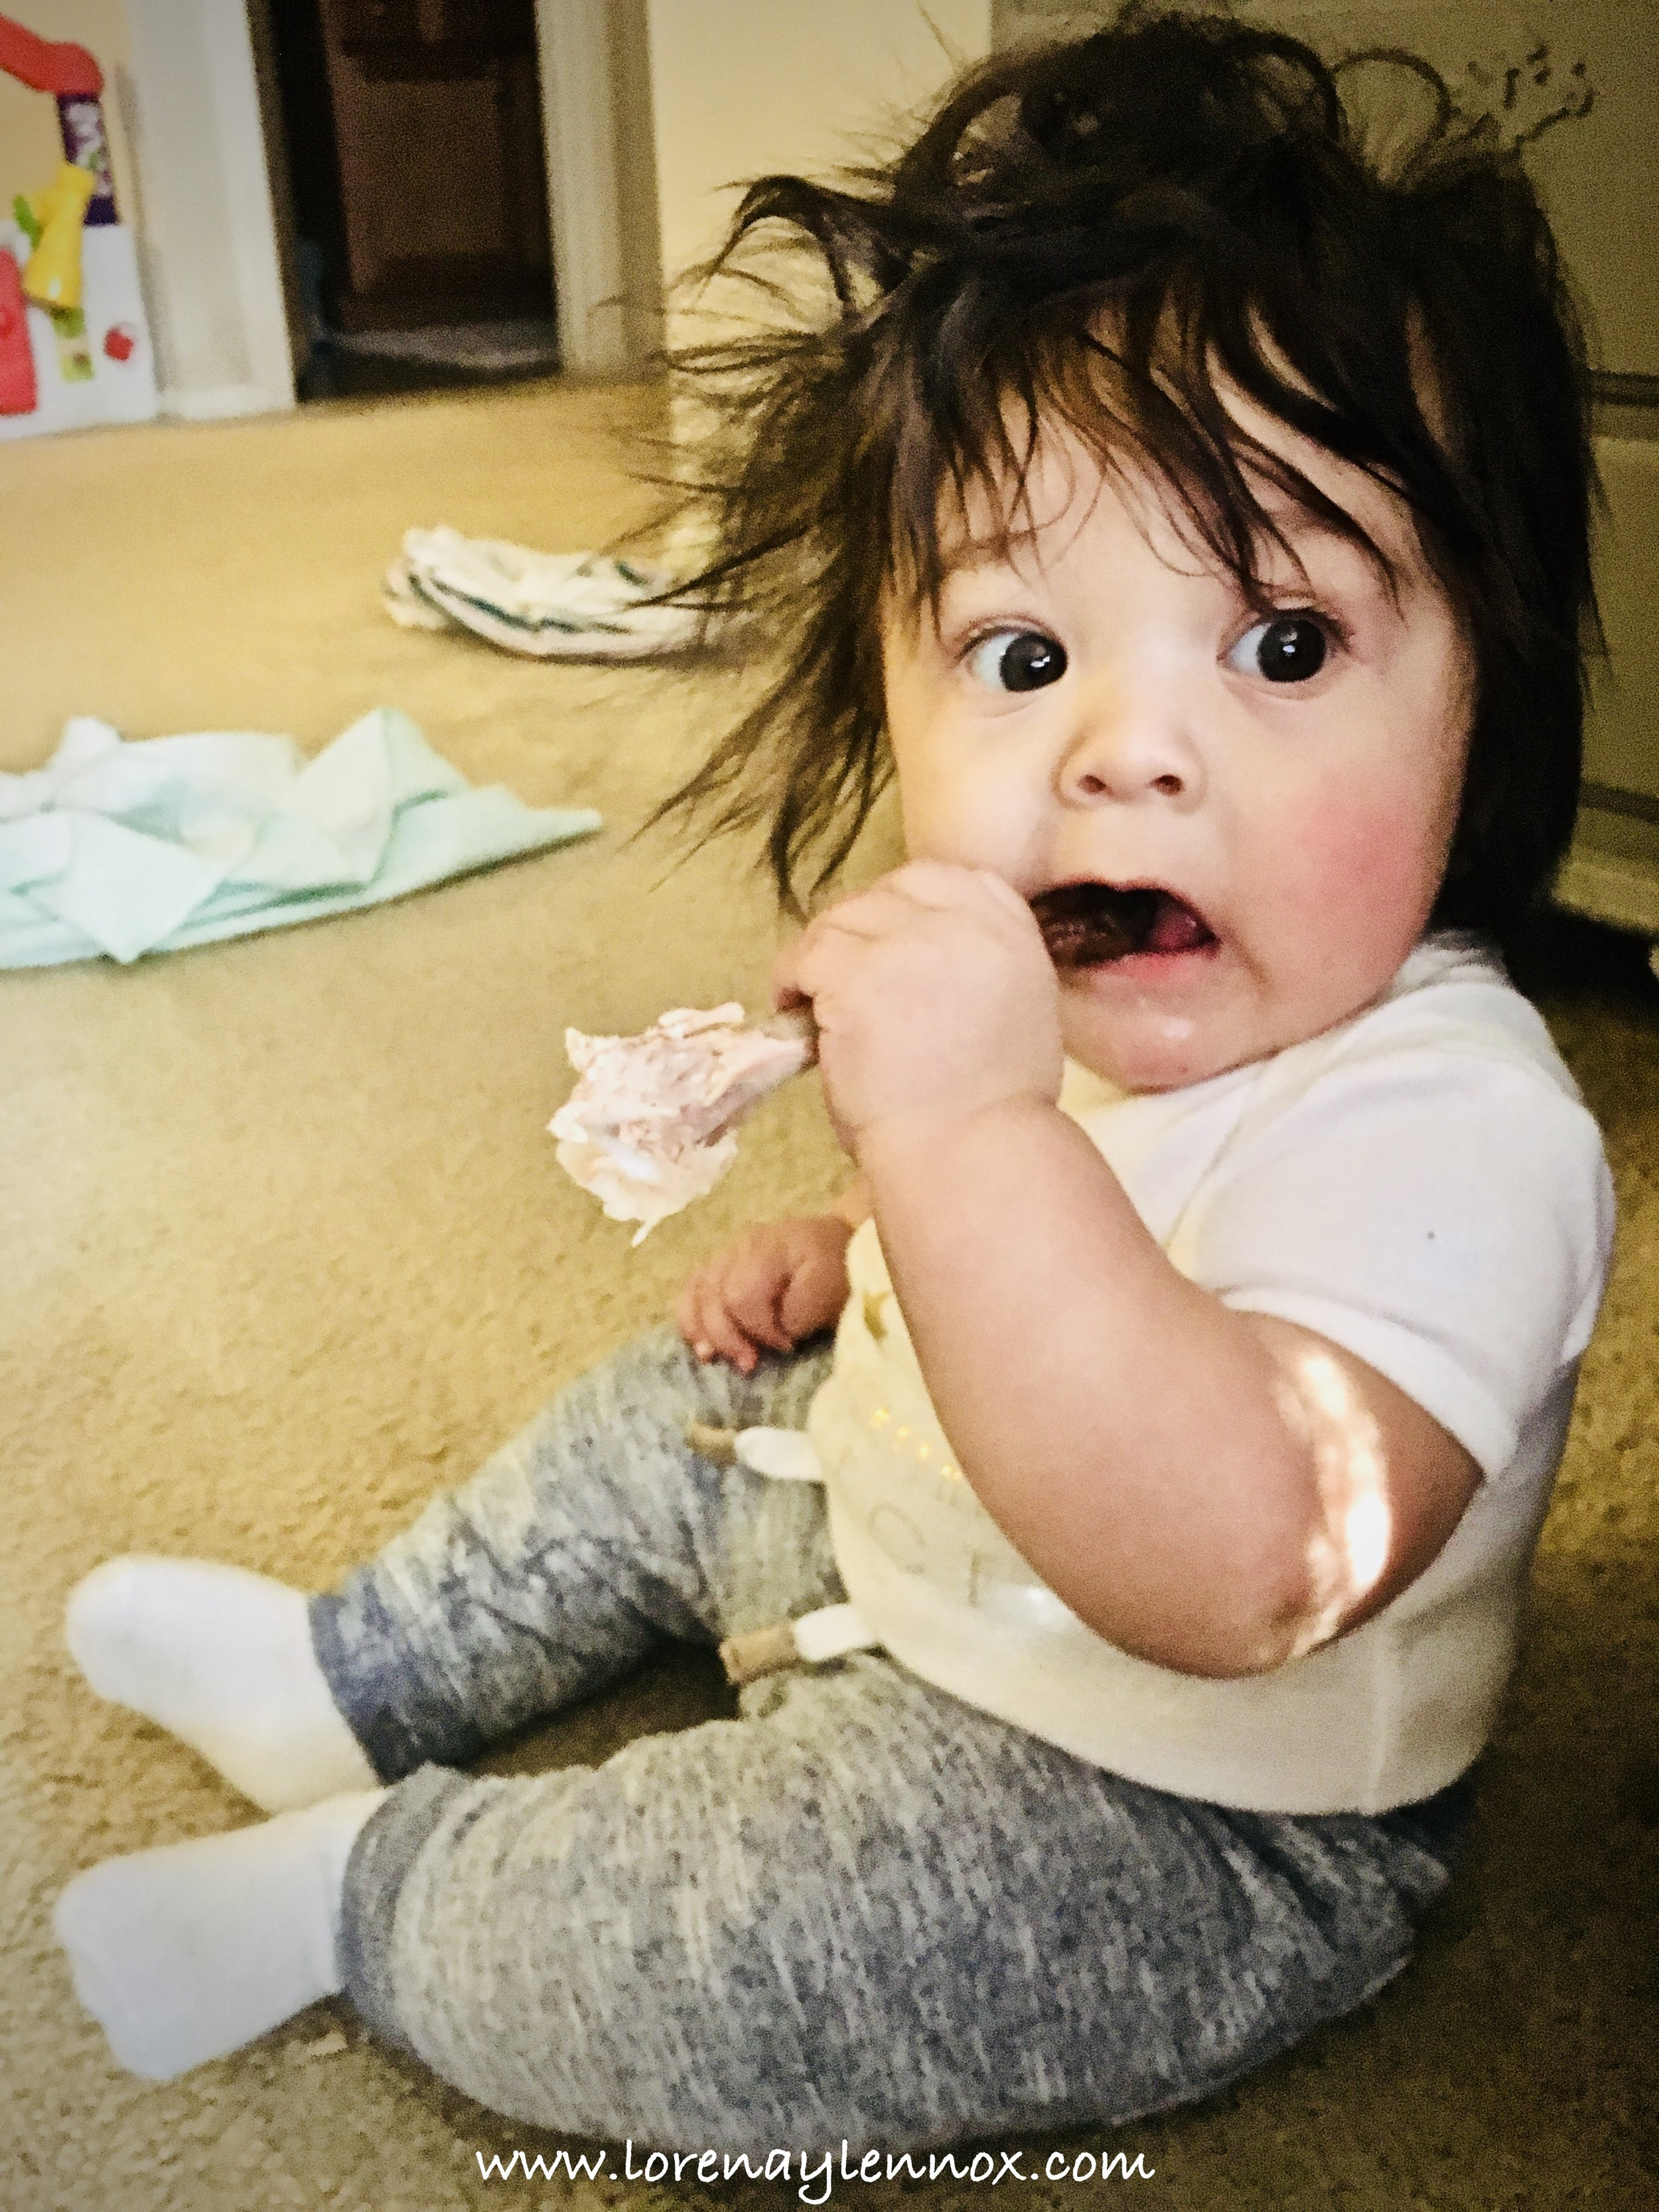 9 Hacks To Alleviate Infant and Toddler Teething Pain